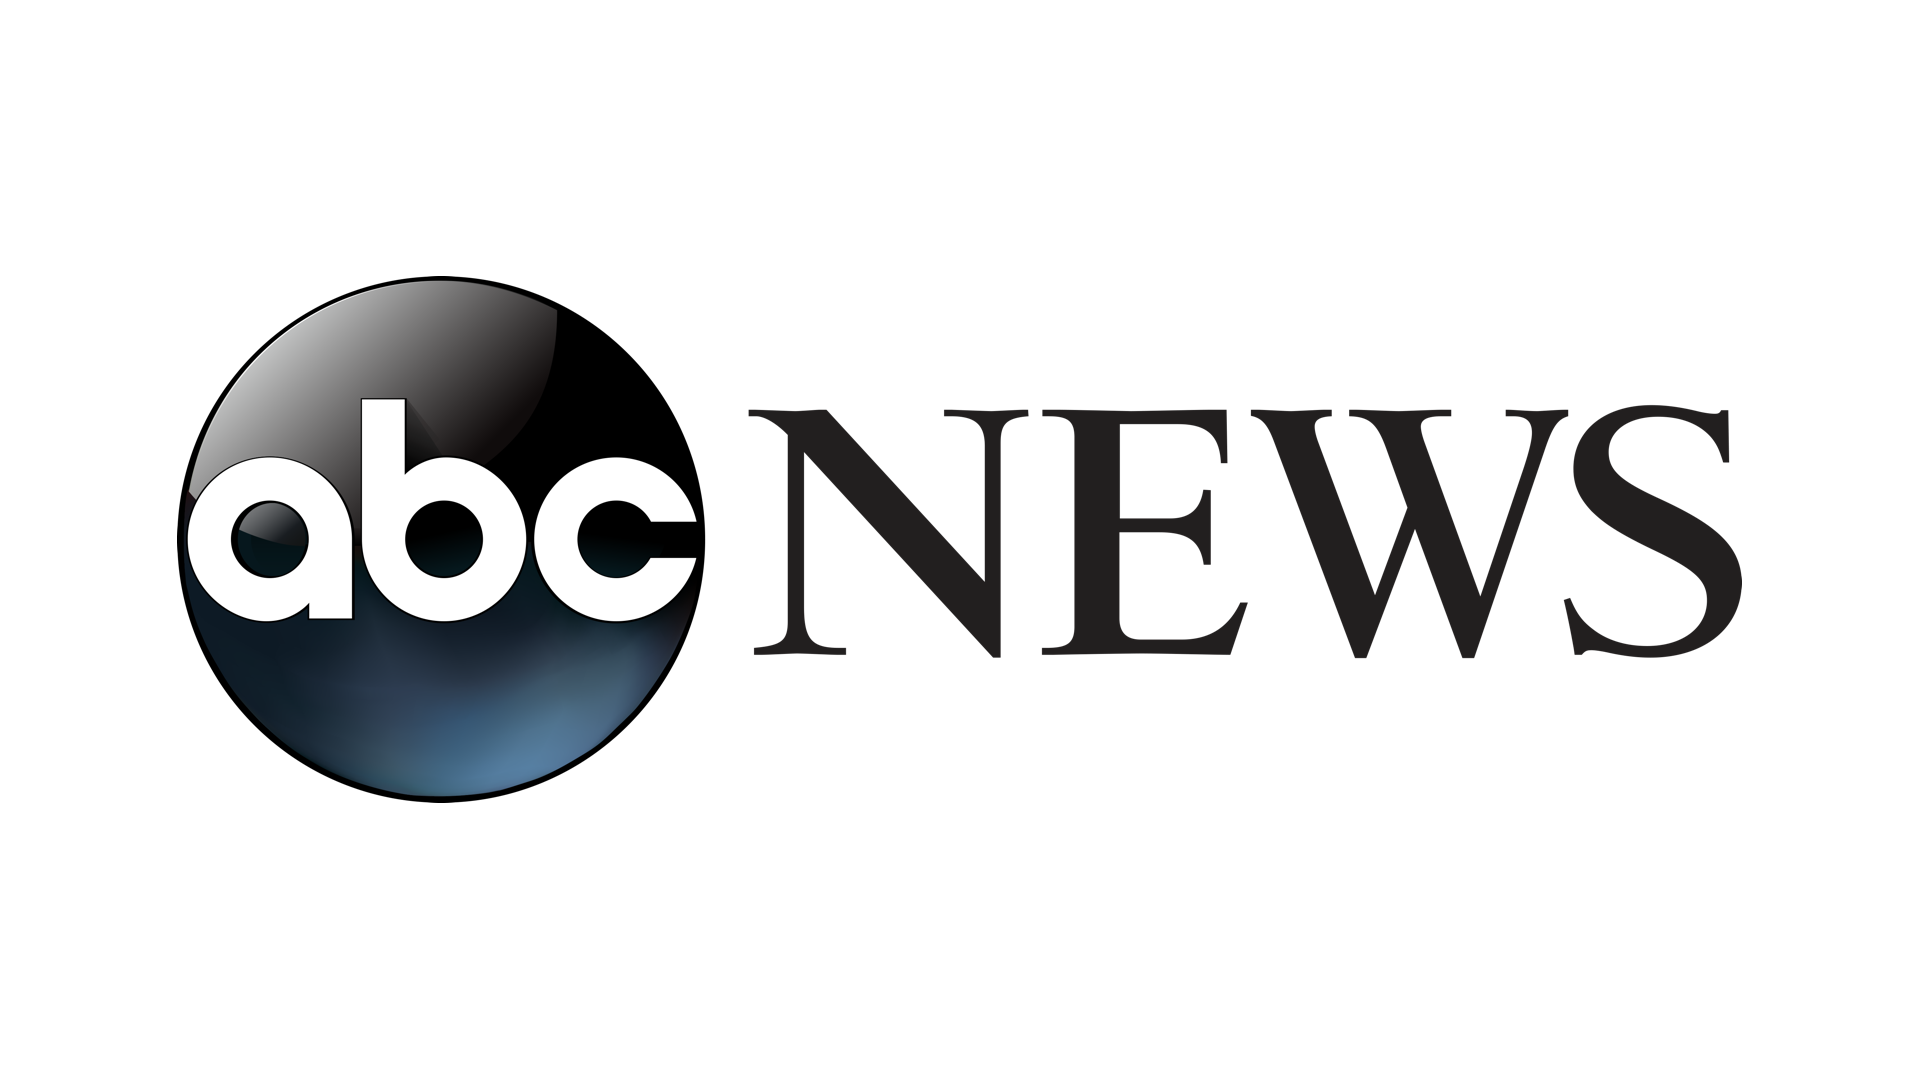 Ken Wisnefski discussed the importance of branding with ABC News